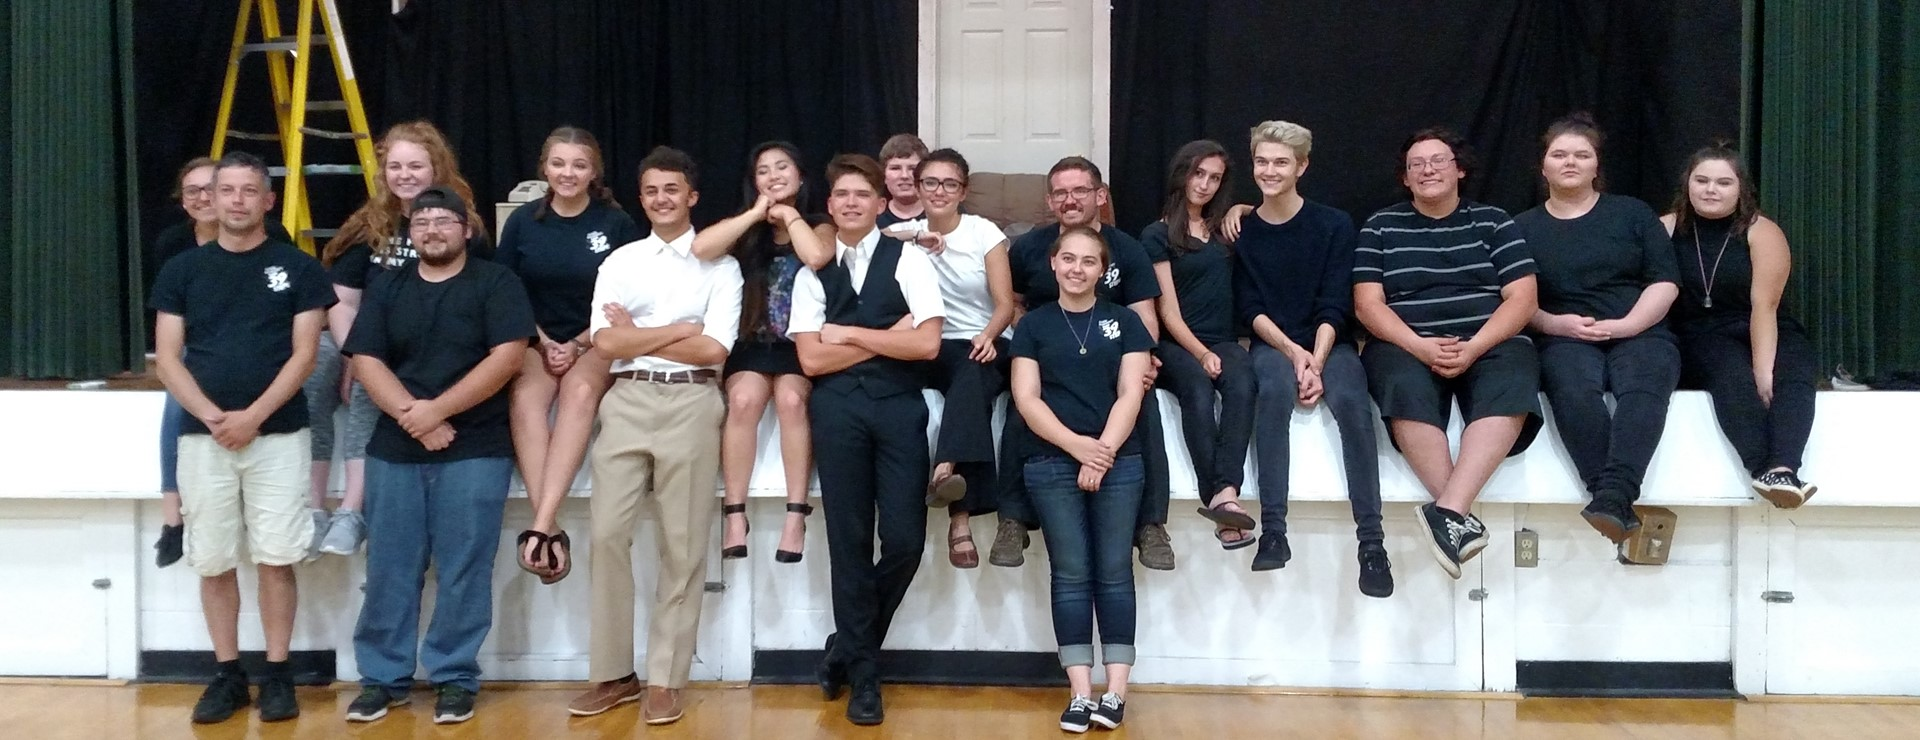 MCTG 39 Steps Cast and Crew